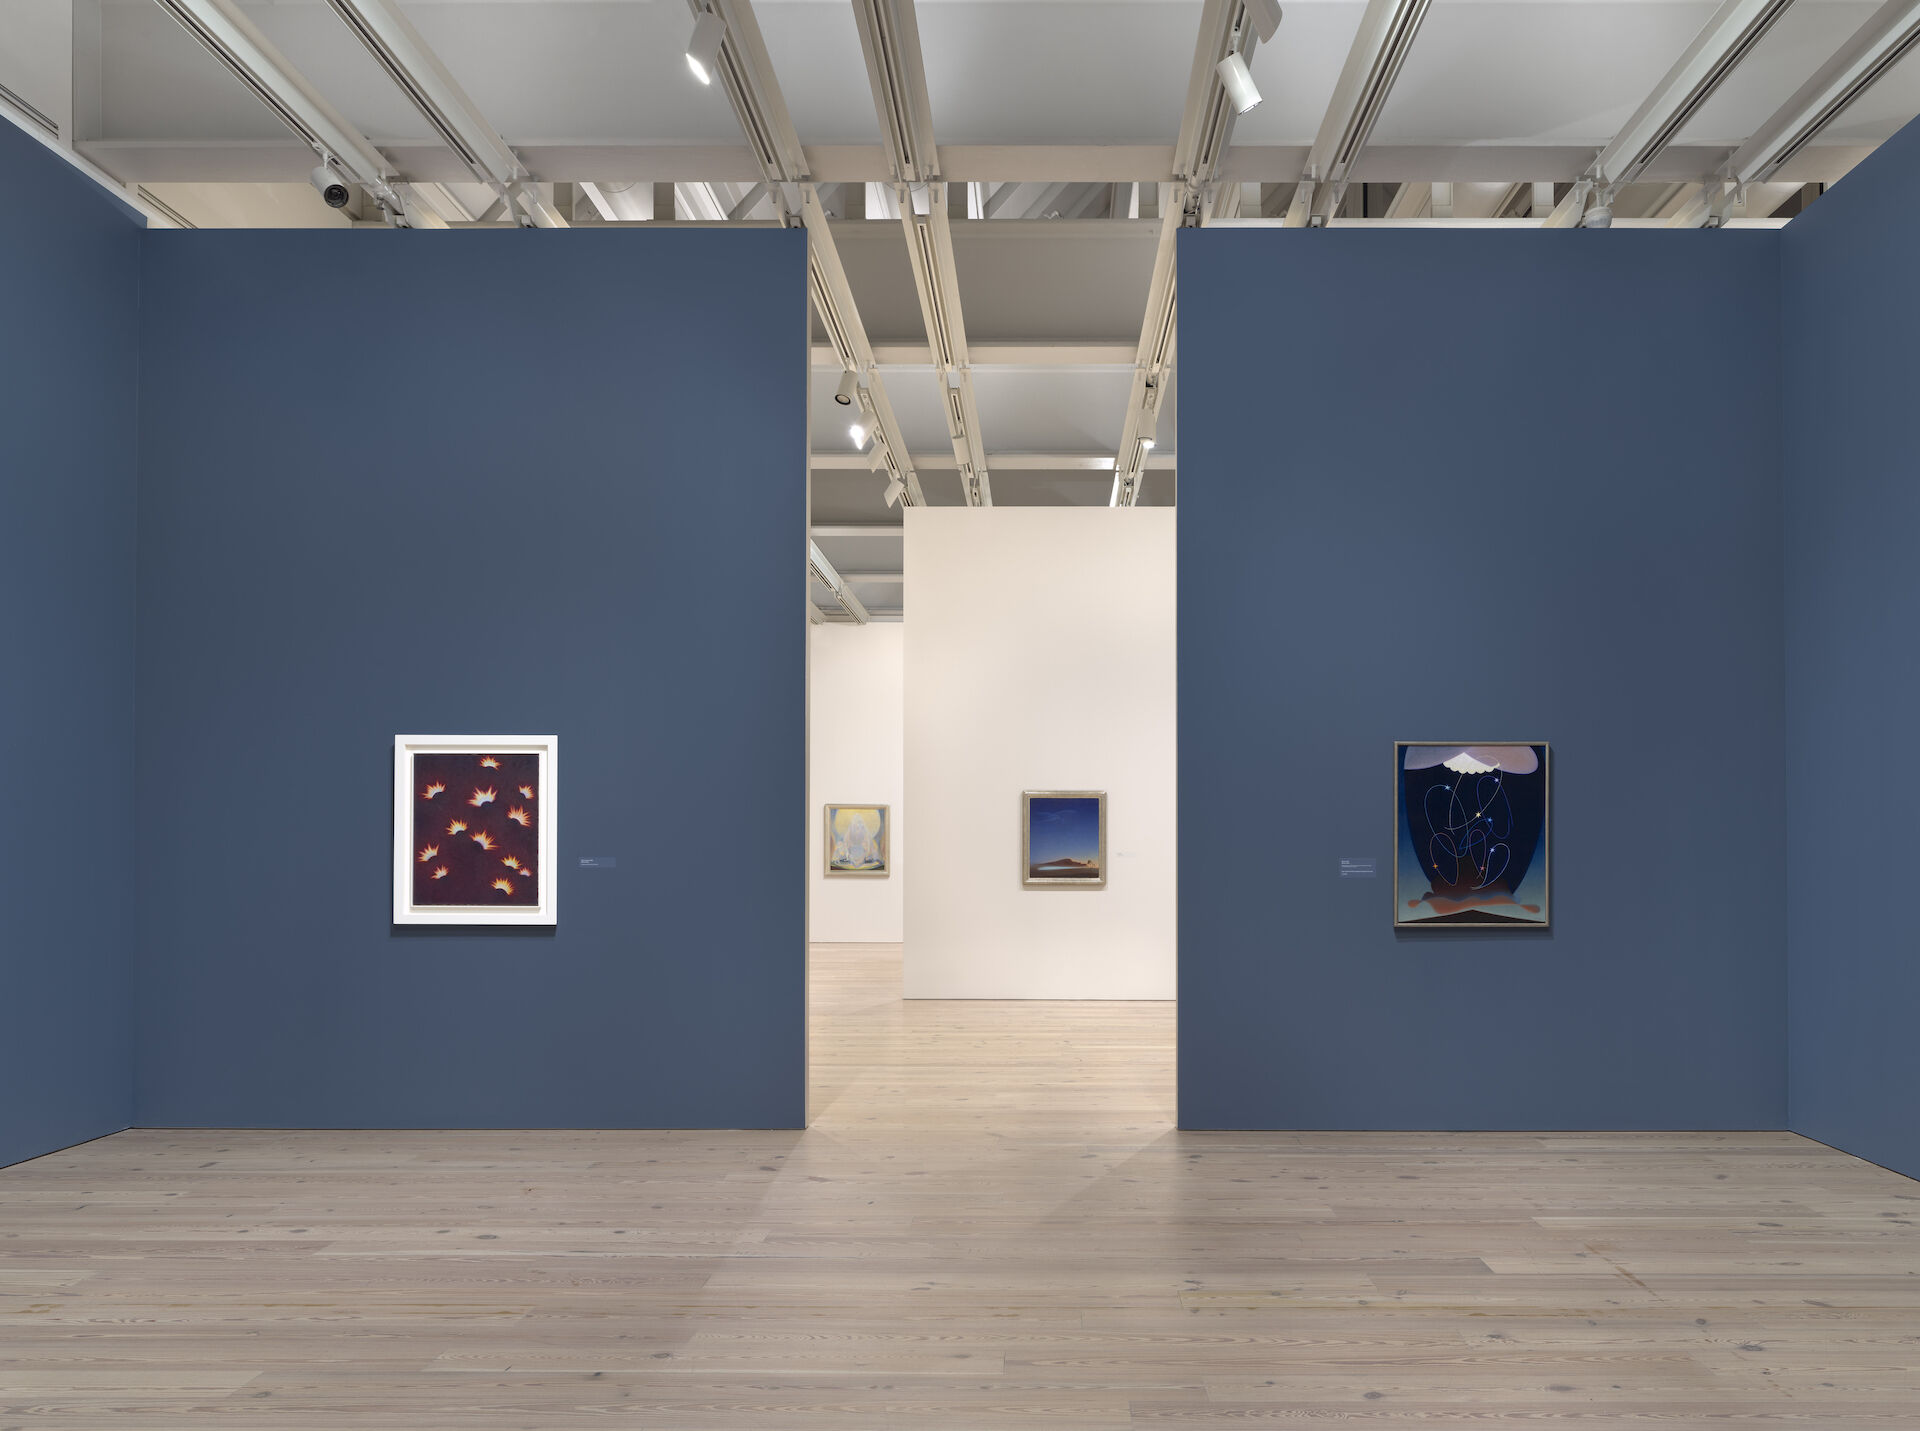 There is an entryway between two blue walls with a painting on each side. Past the entryway is a white room with paintings against the back wall. Each painting is by Agnes Pelton at the Whitney. From left to right: Fires in Space, 1938; The Fountains, 1926; Return, 1940; Orbits, 1934.